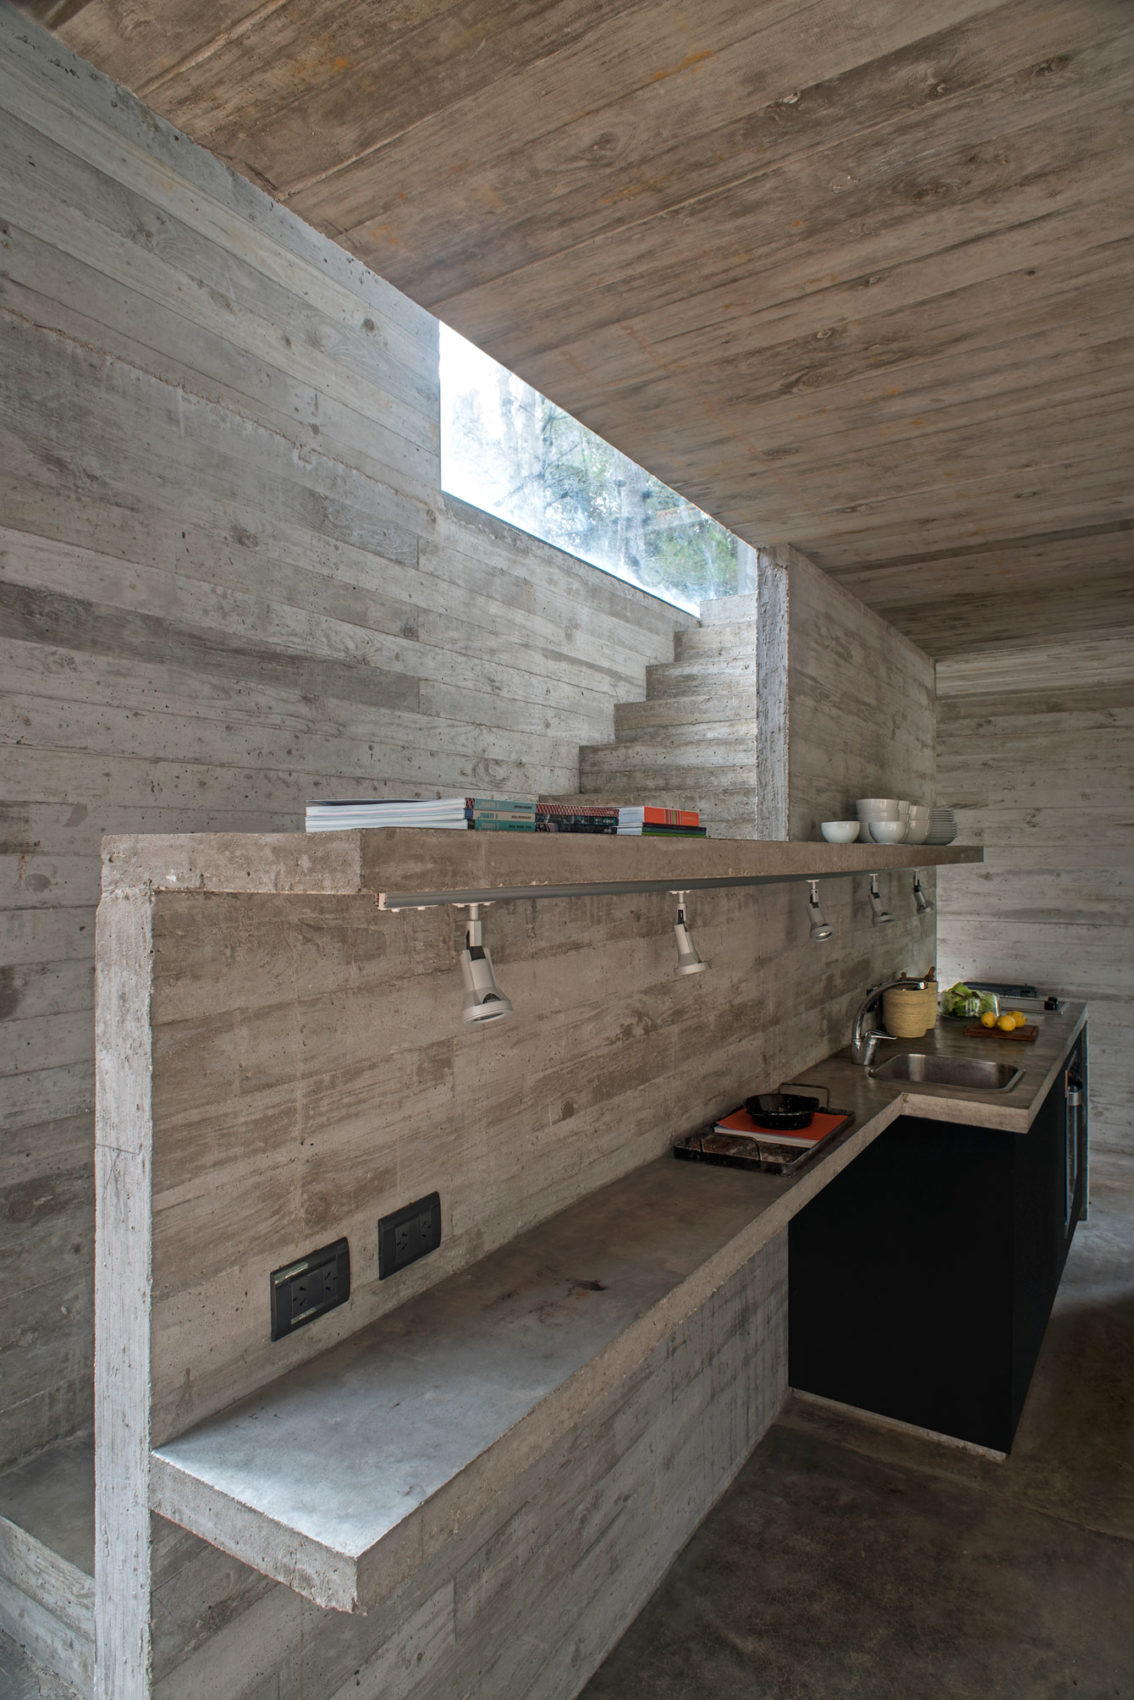 H3 House by Luciano Kruk (16)